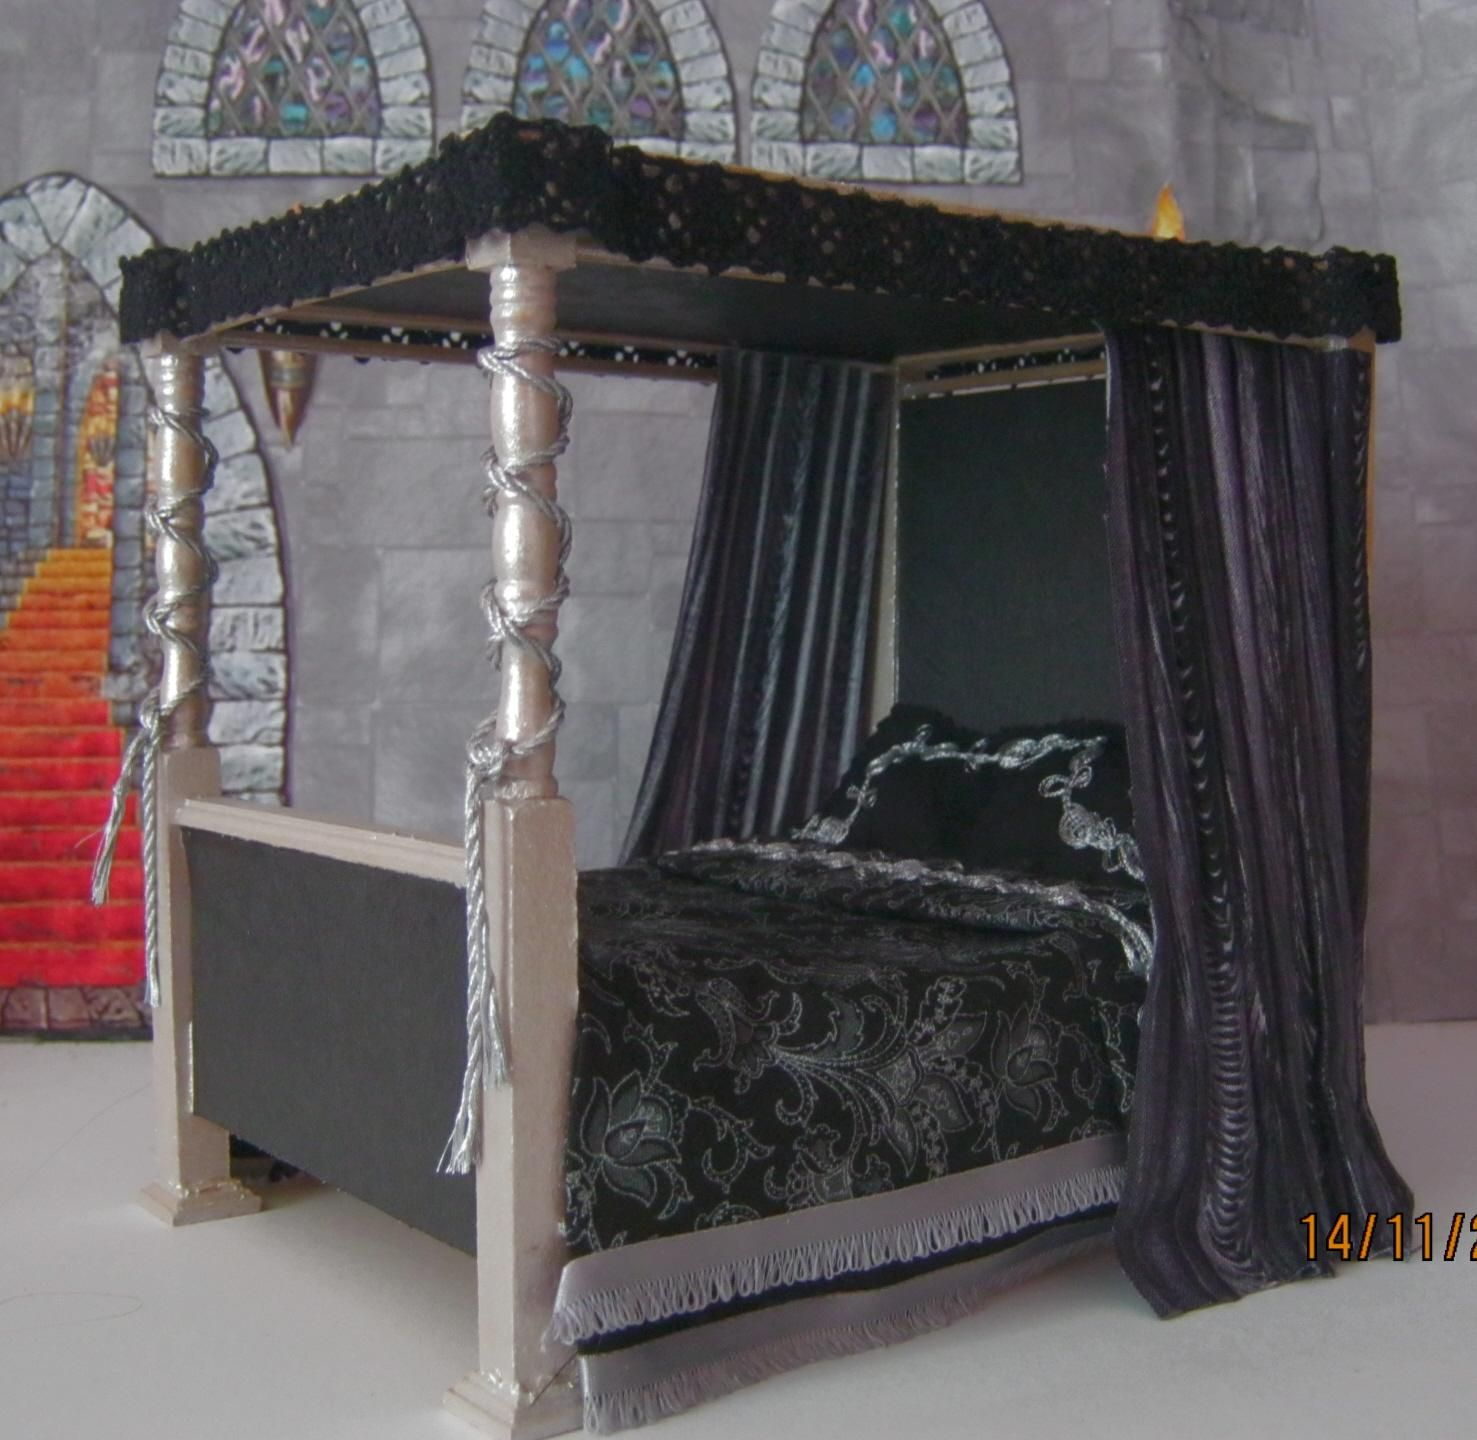 doll's house GOTHIC medieval witch Tudor 4 POSTER BED